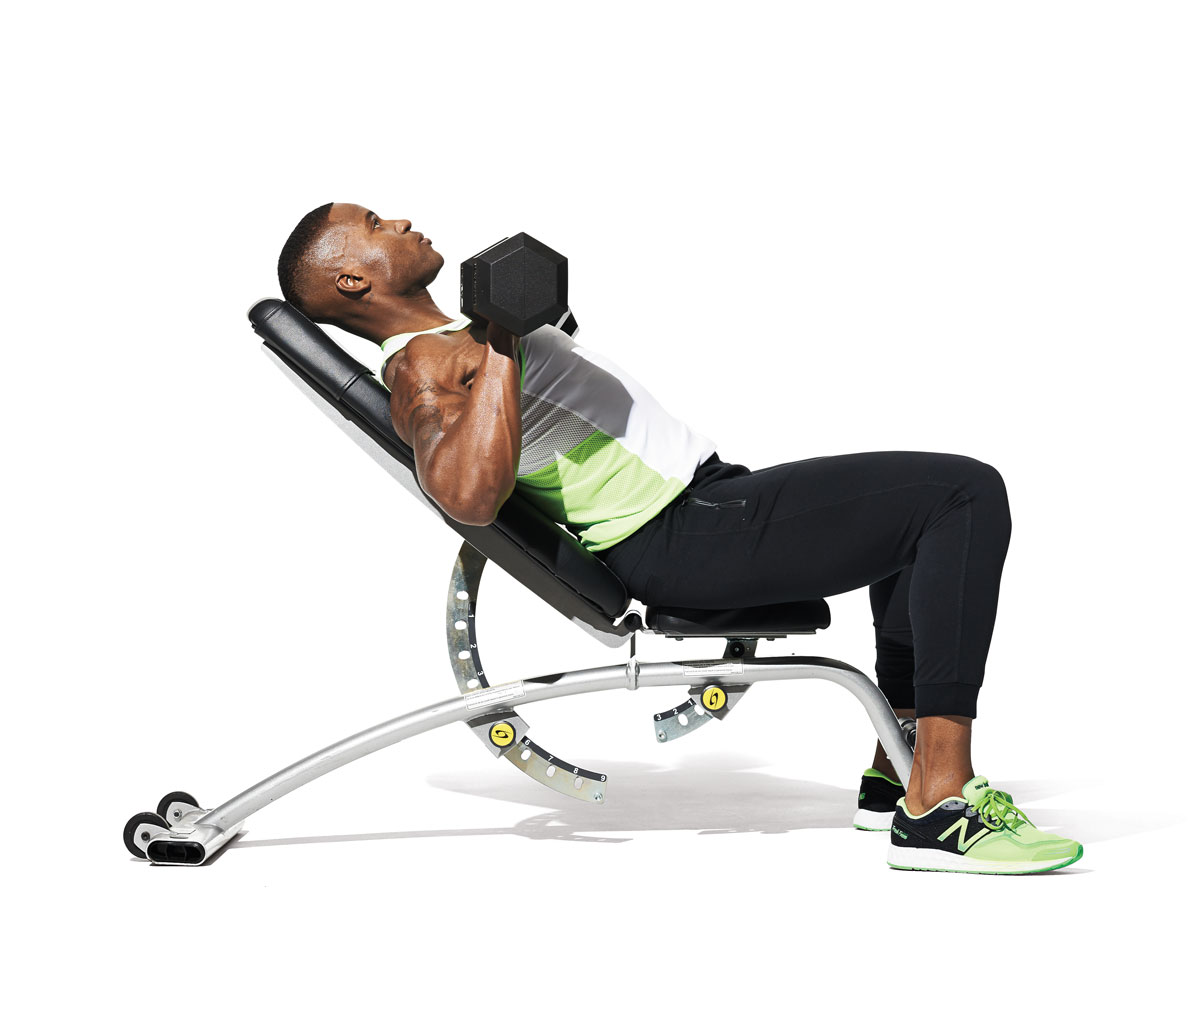 Pleasing 25 Strength Training Exercises For The Best Upper Body Workout Alphanode Cool Chair Designs And Ideas Alphanodeonline